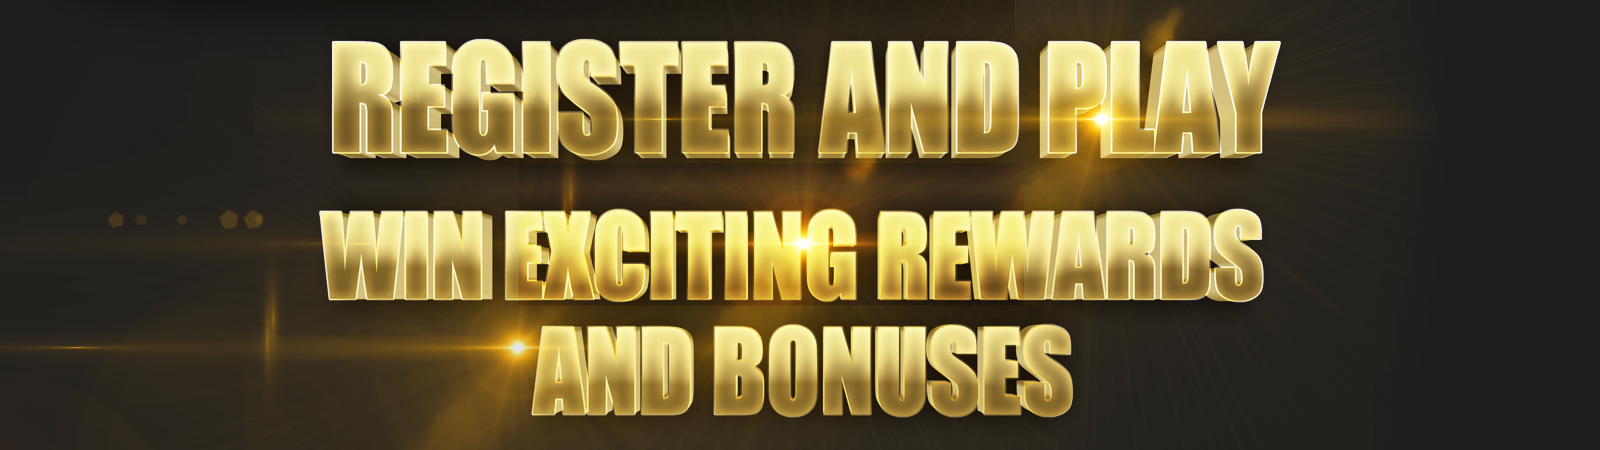 REGISTER AND PLAY BANNER